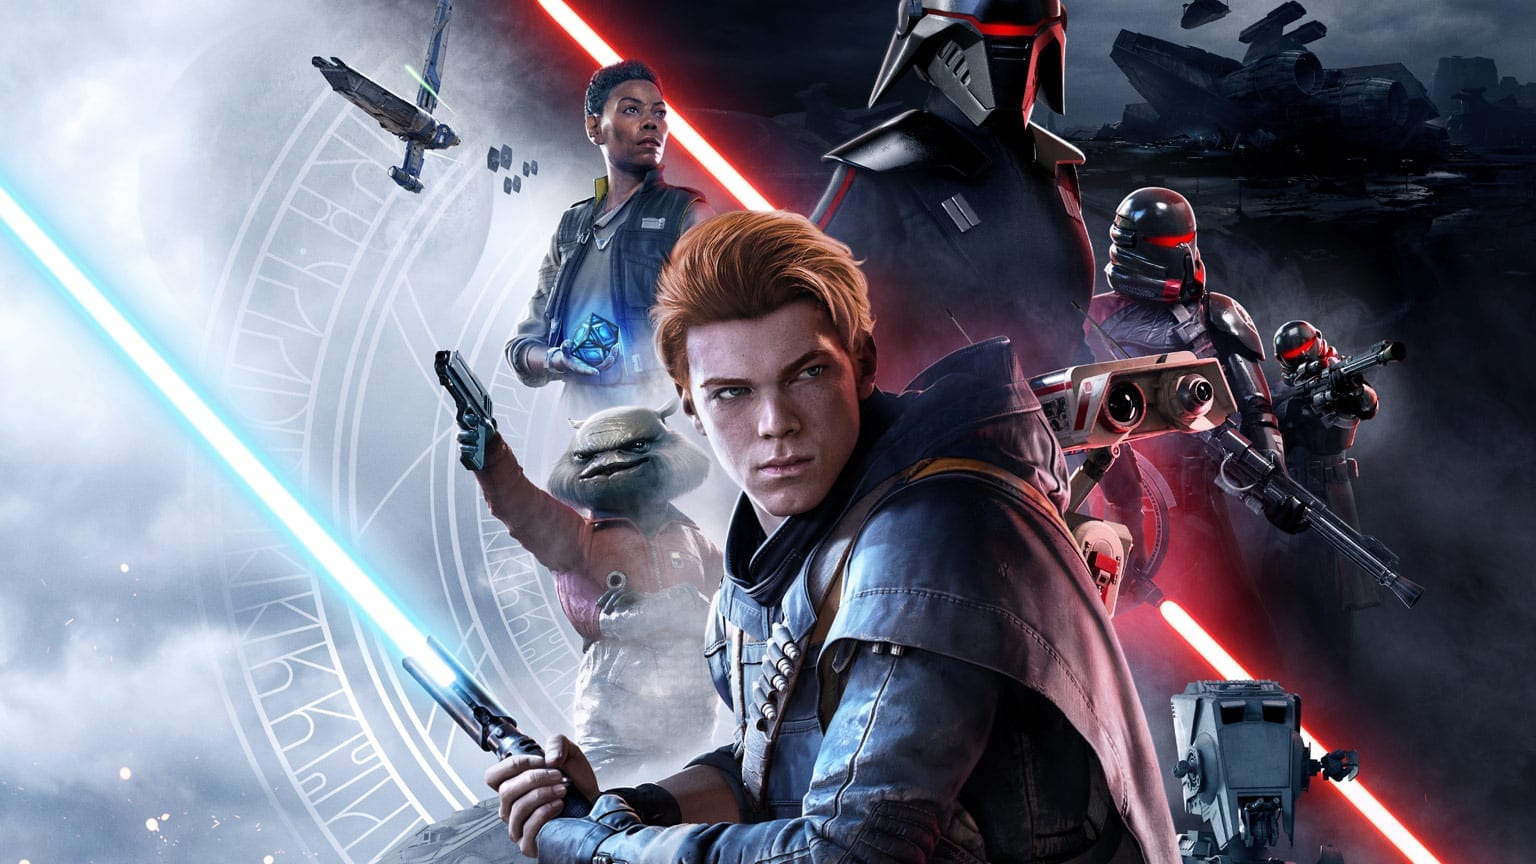 Star Wars Jedi: Fallen Order Coming Soon To PS5 & Xbox Series X S